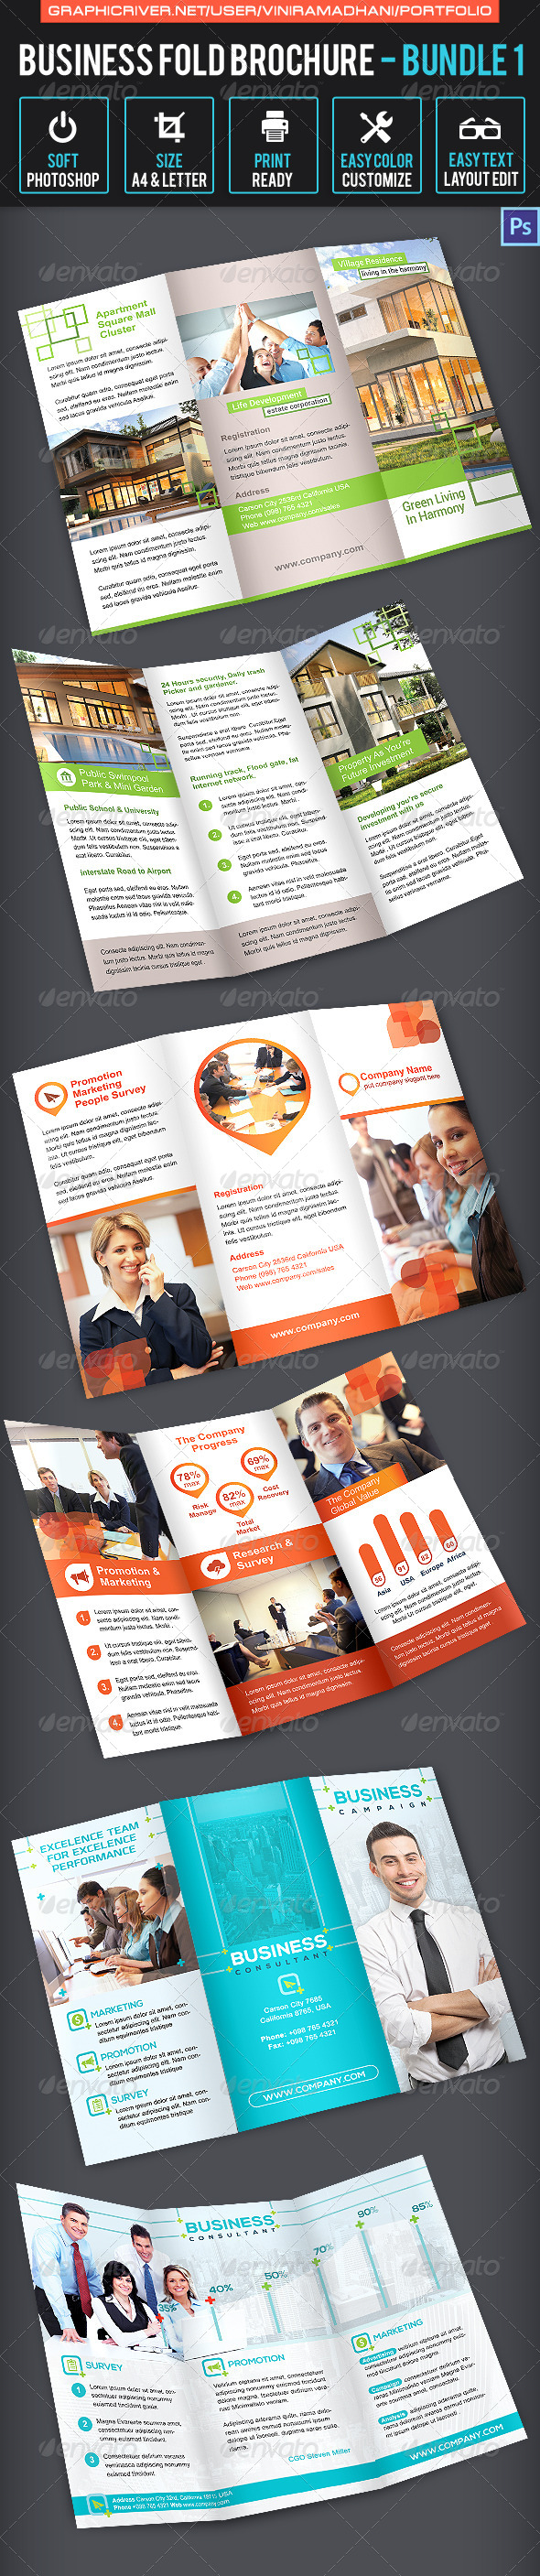 GraphicRiver Business Trifold Brochure Bundle 1 7092436